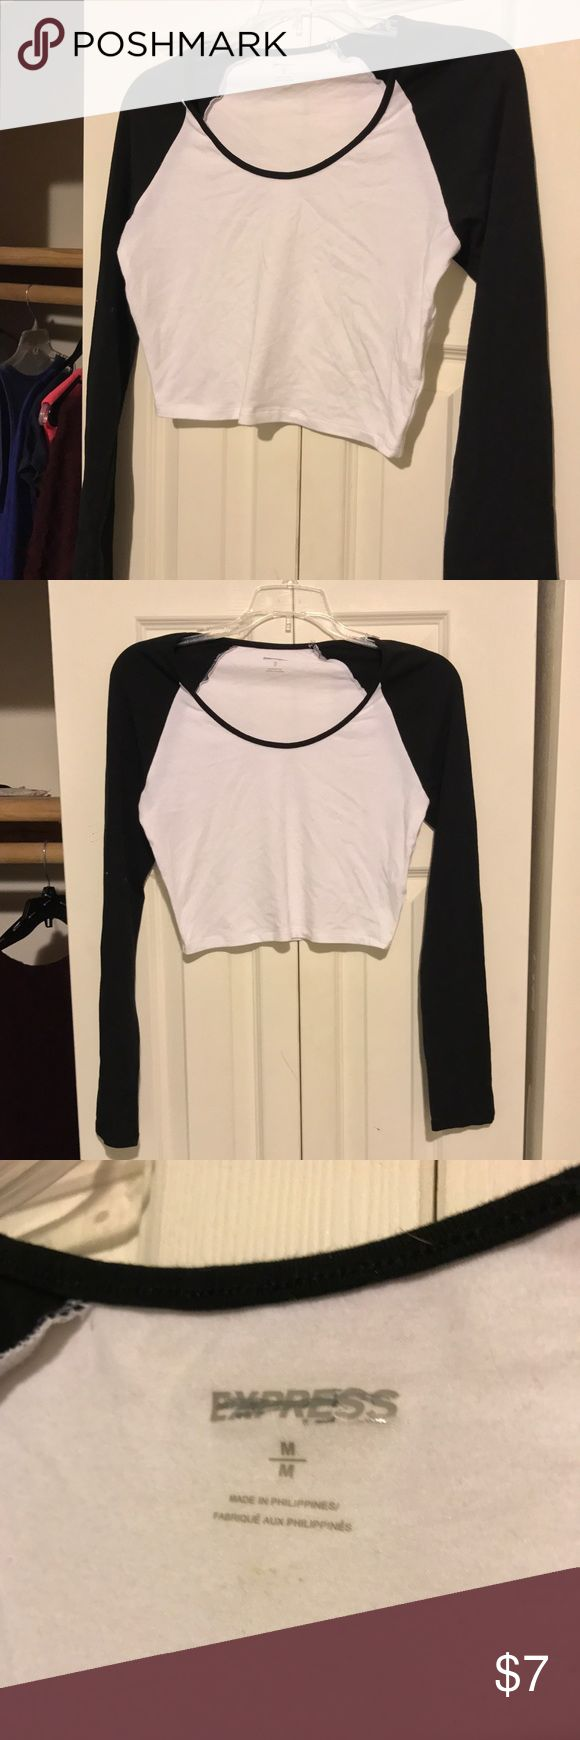 Express Baseball Crop Cotton fitted baseball Crop Top from Express. Black & white. Great condition! Express Tops Crop Tops